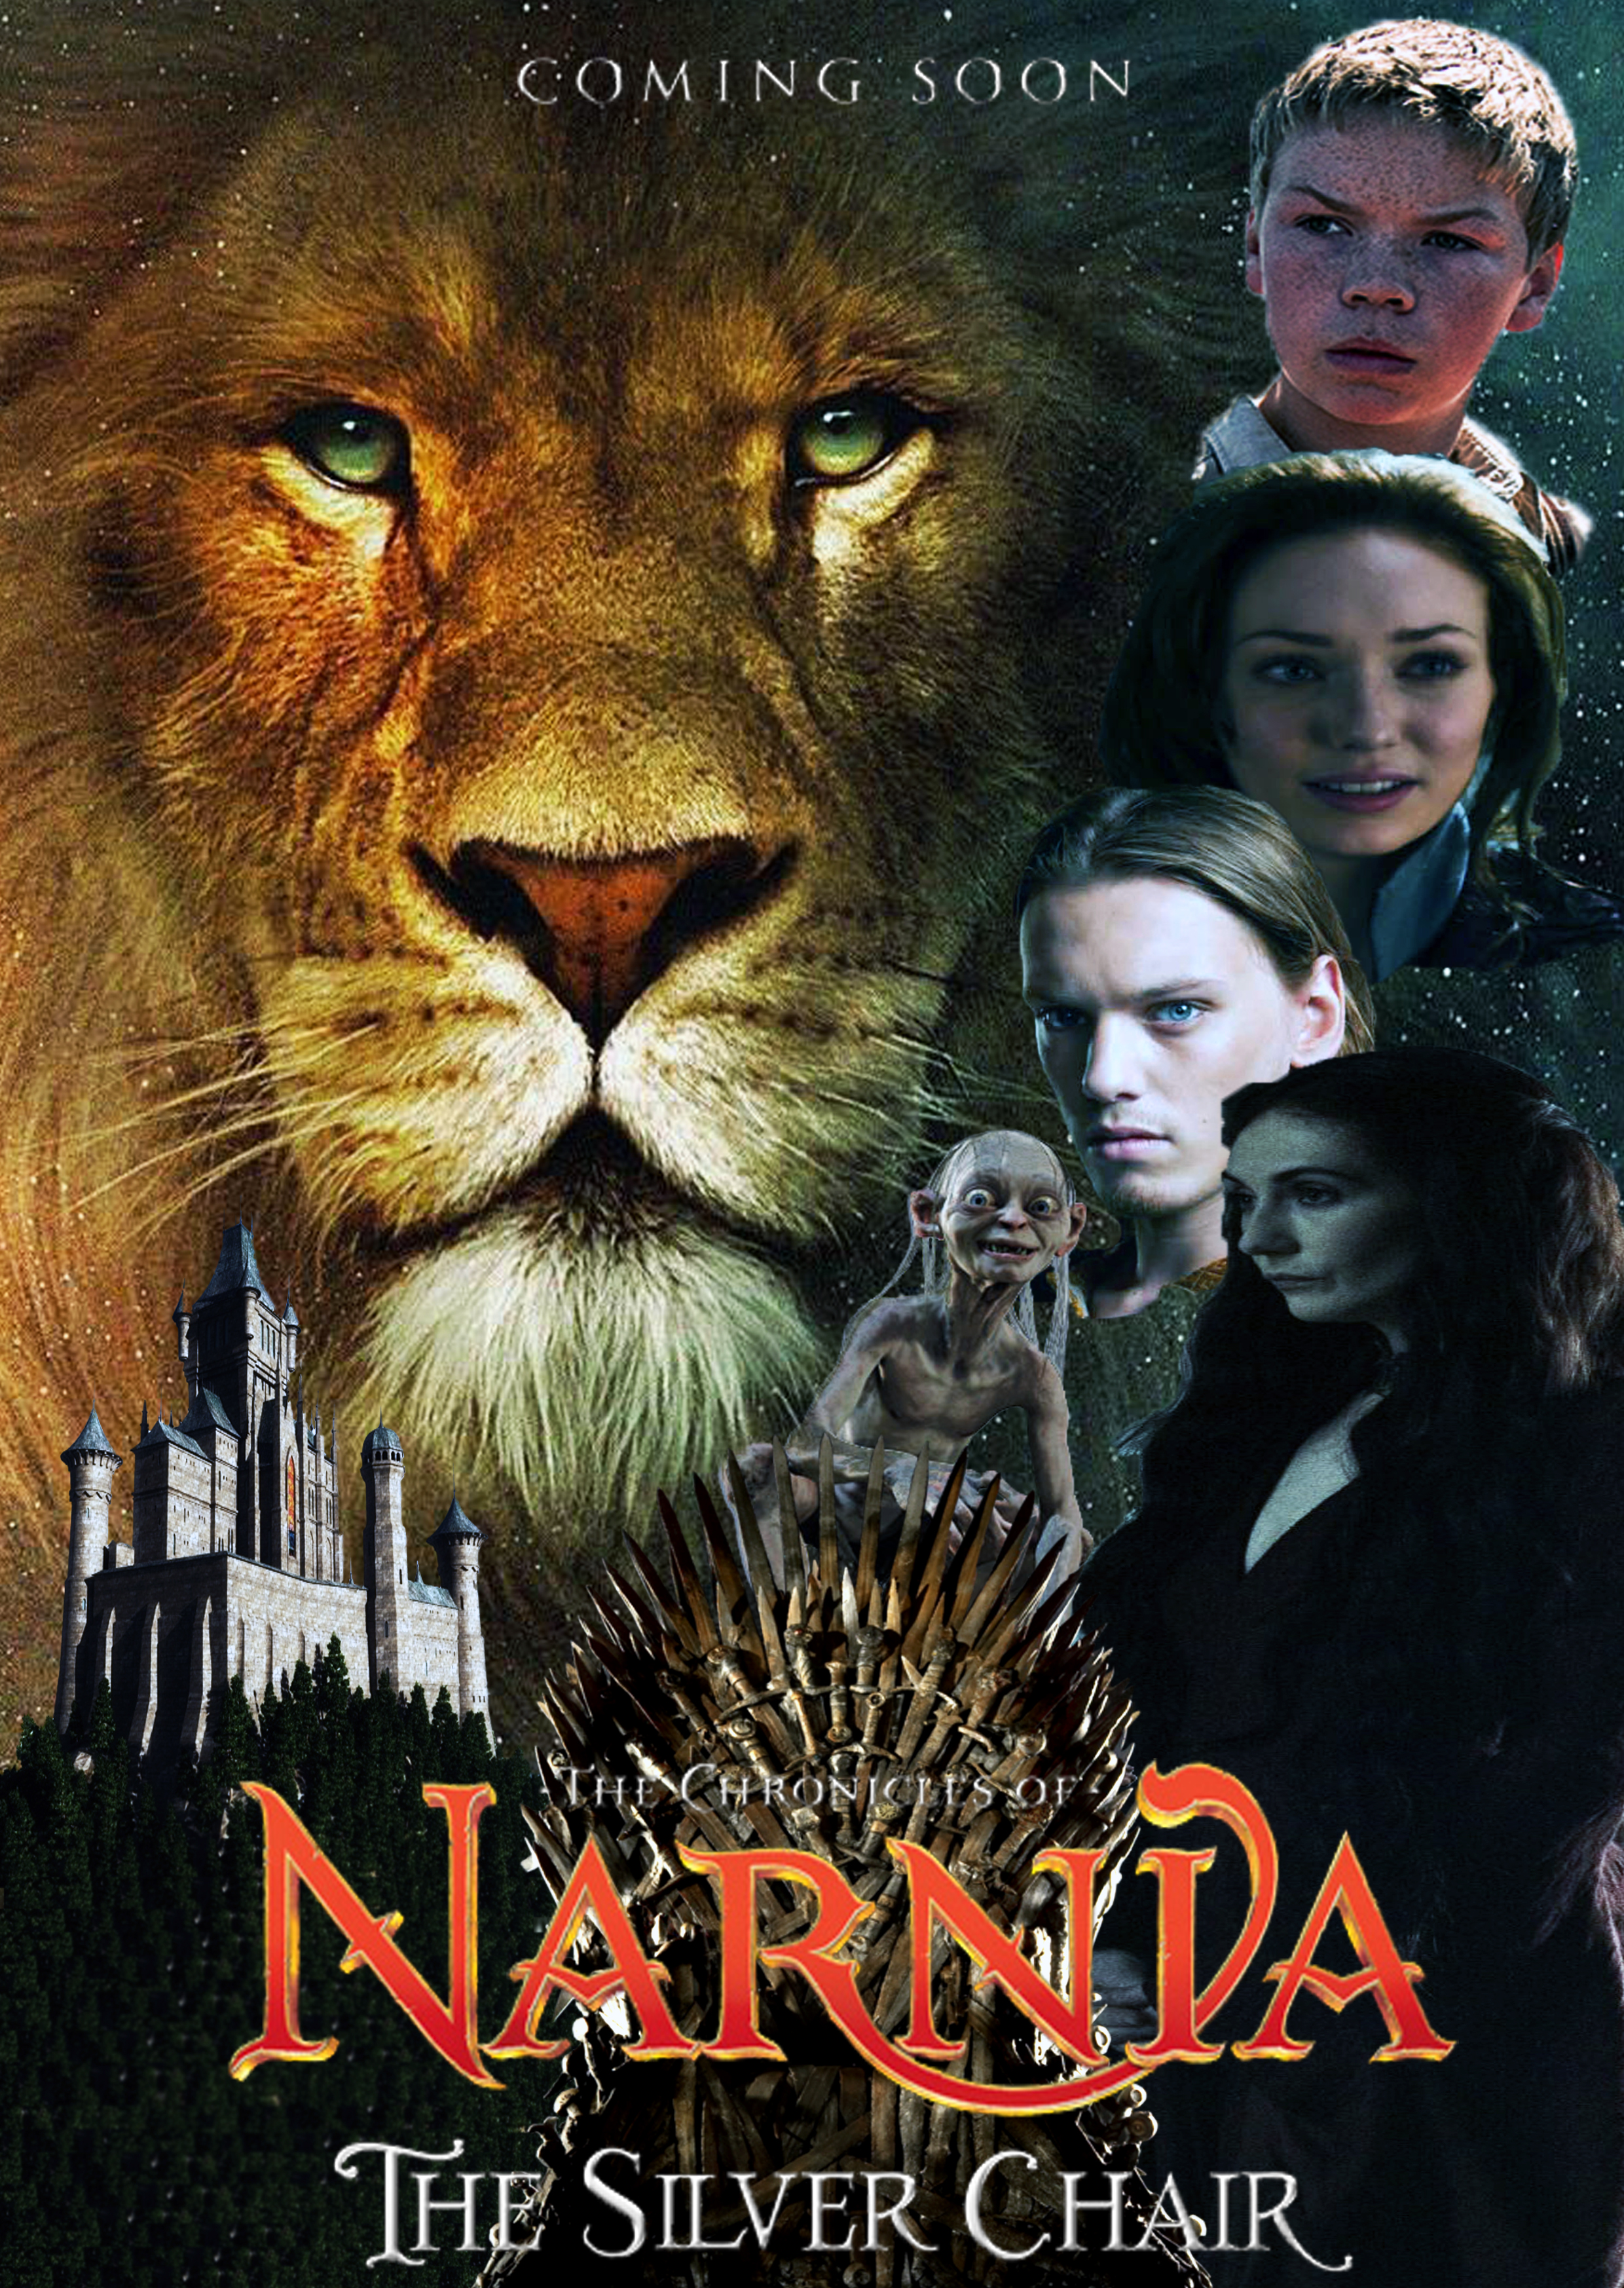 The Chronicles of Narnia: The Silver Chair (2013 film